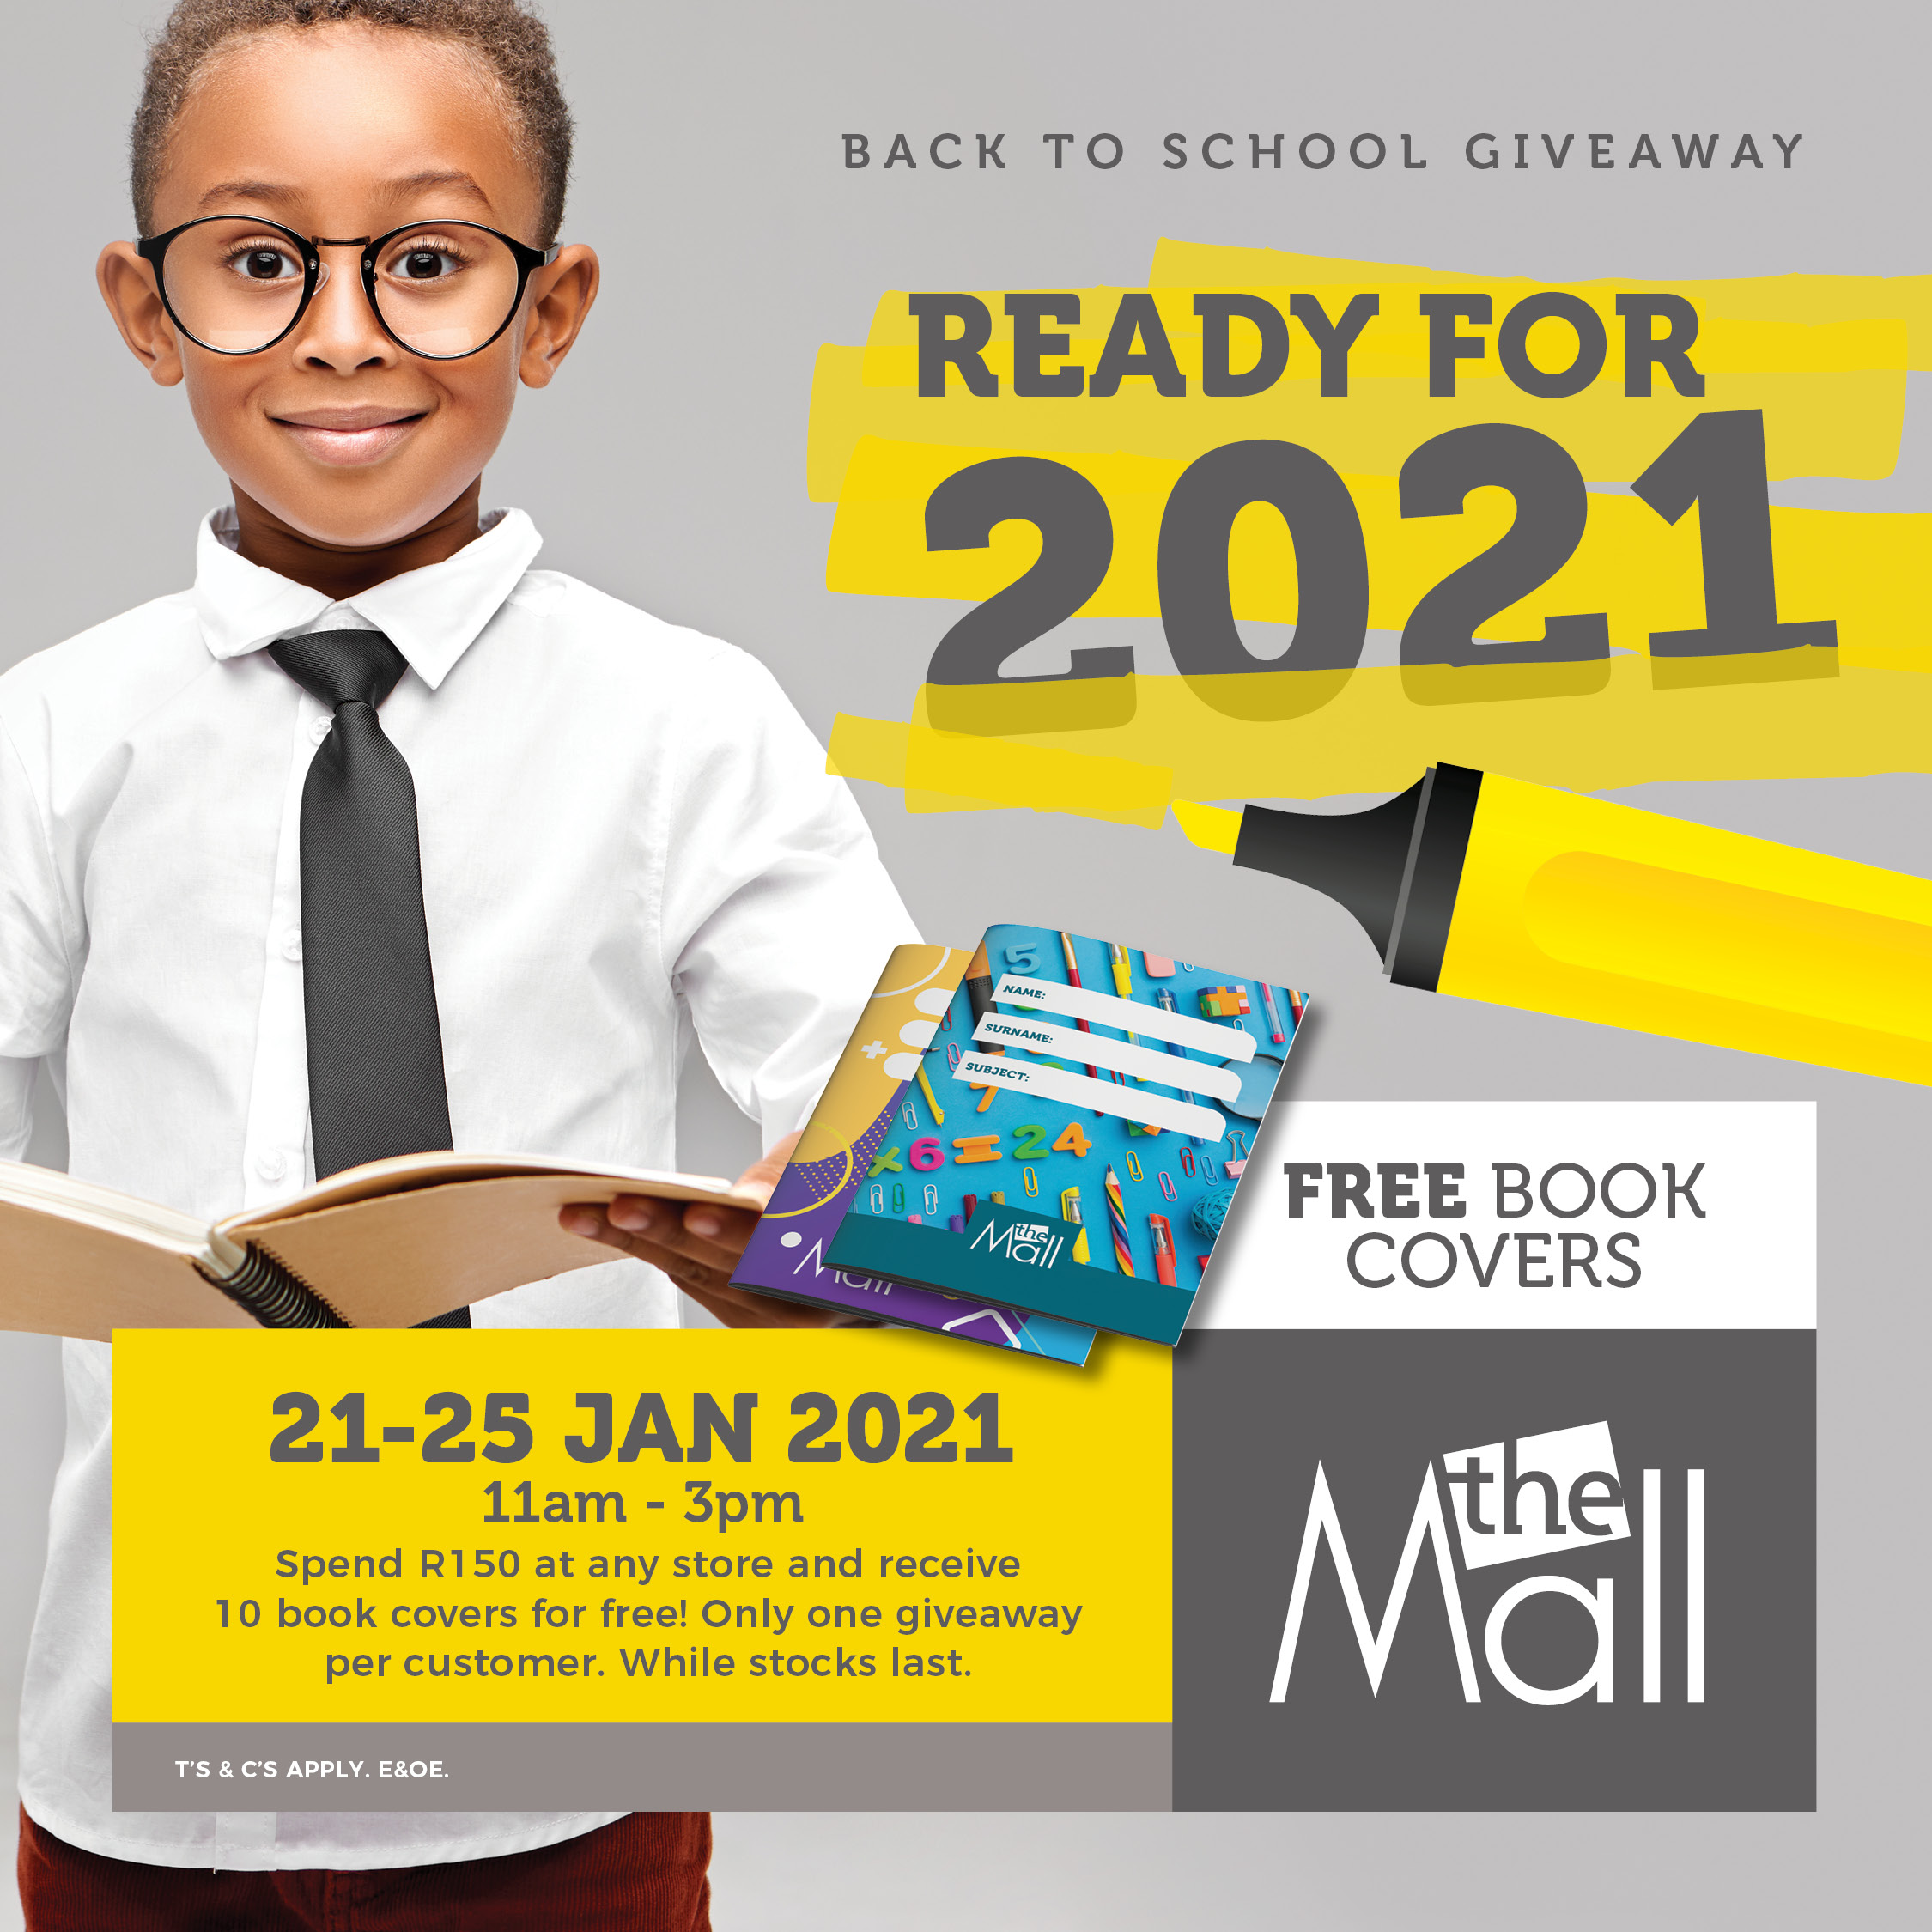 THE MALL BACK TO SCHOOL 2021